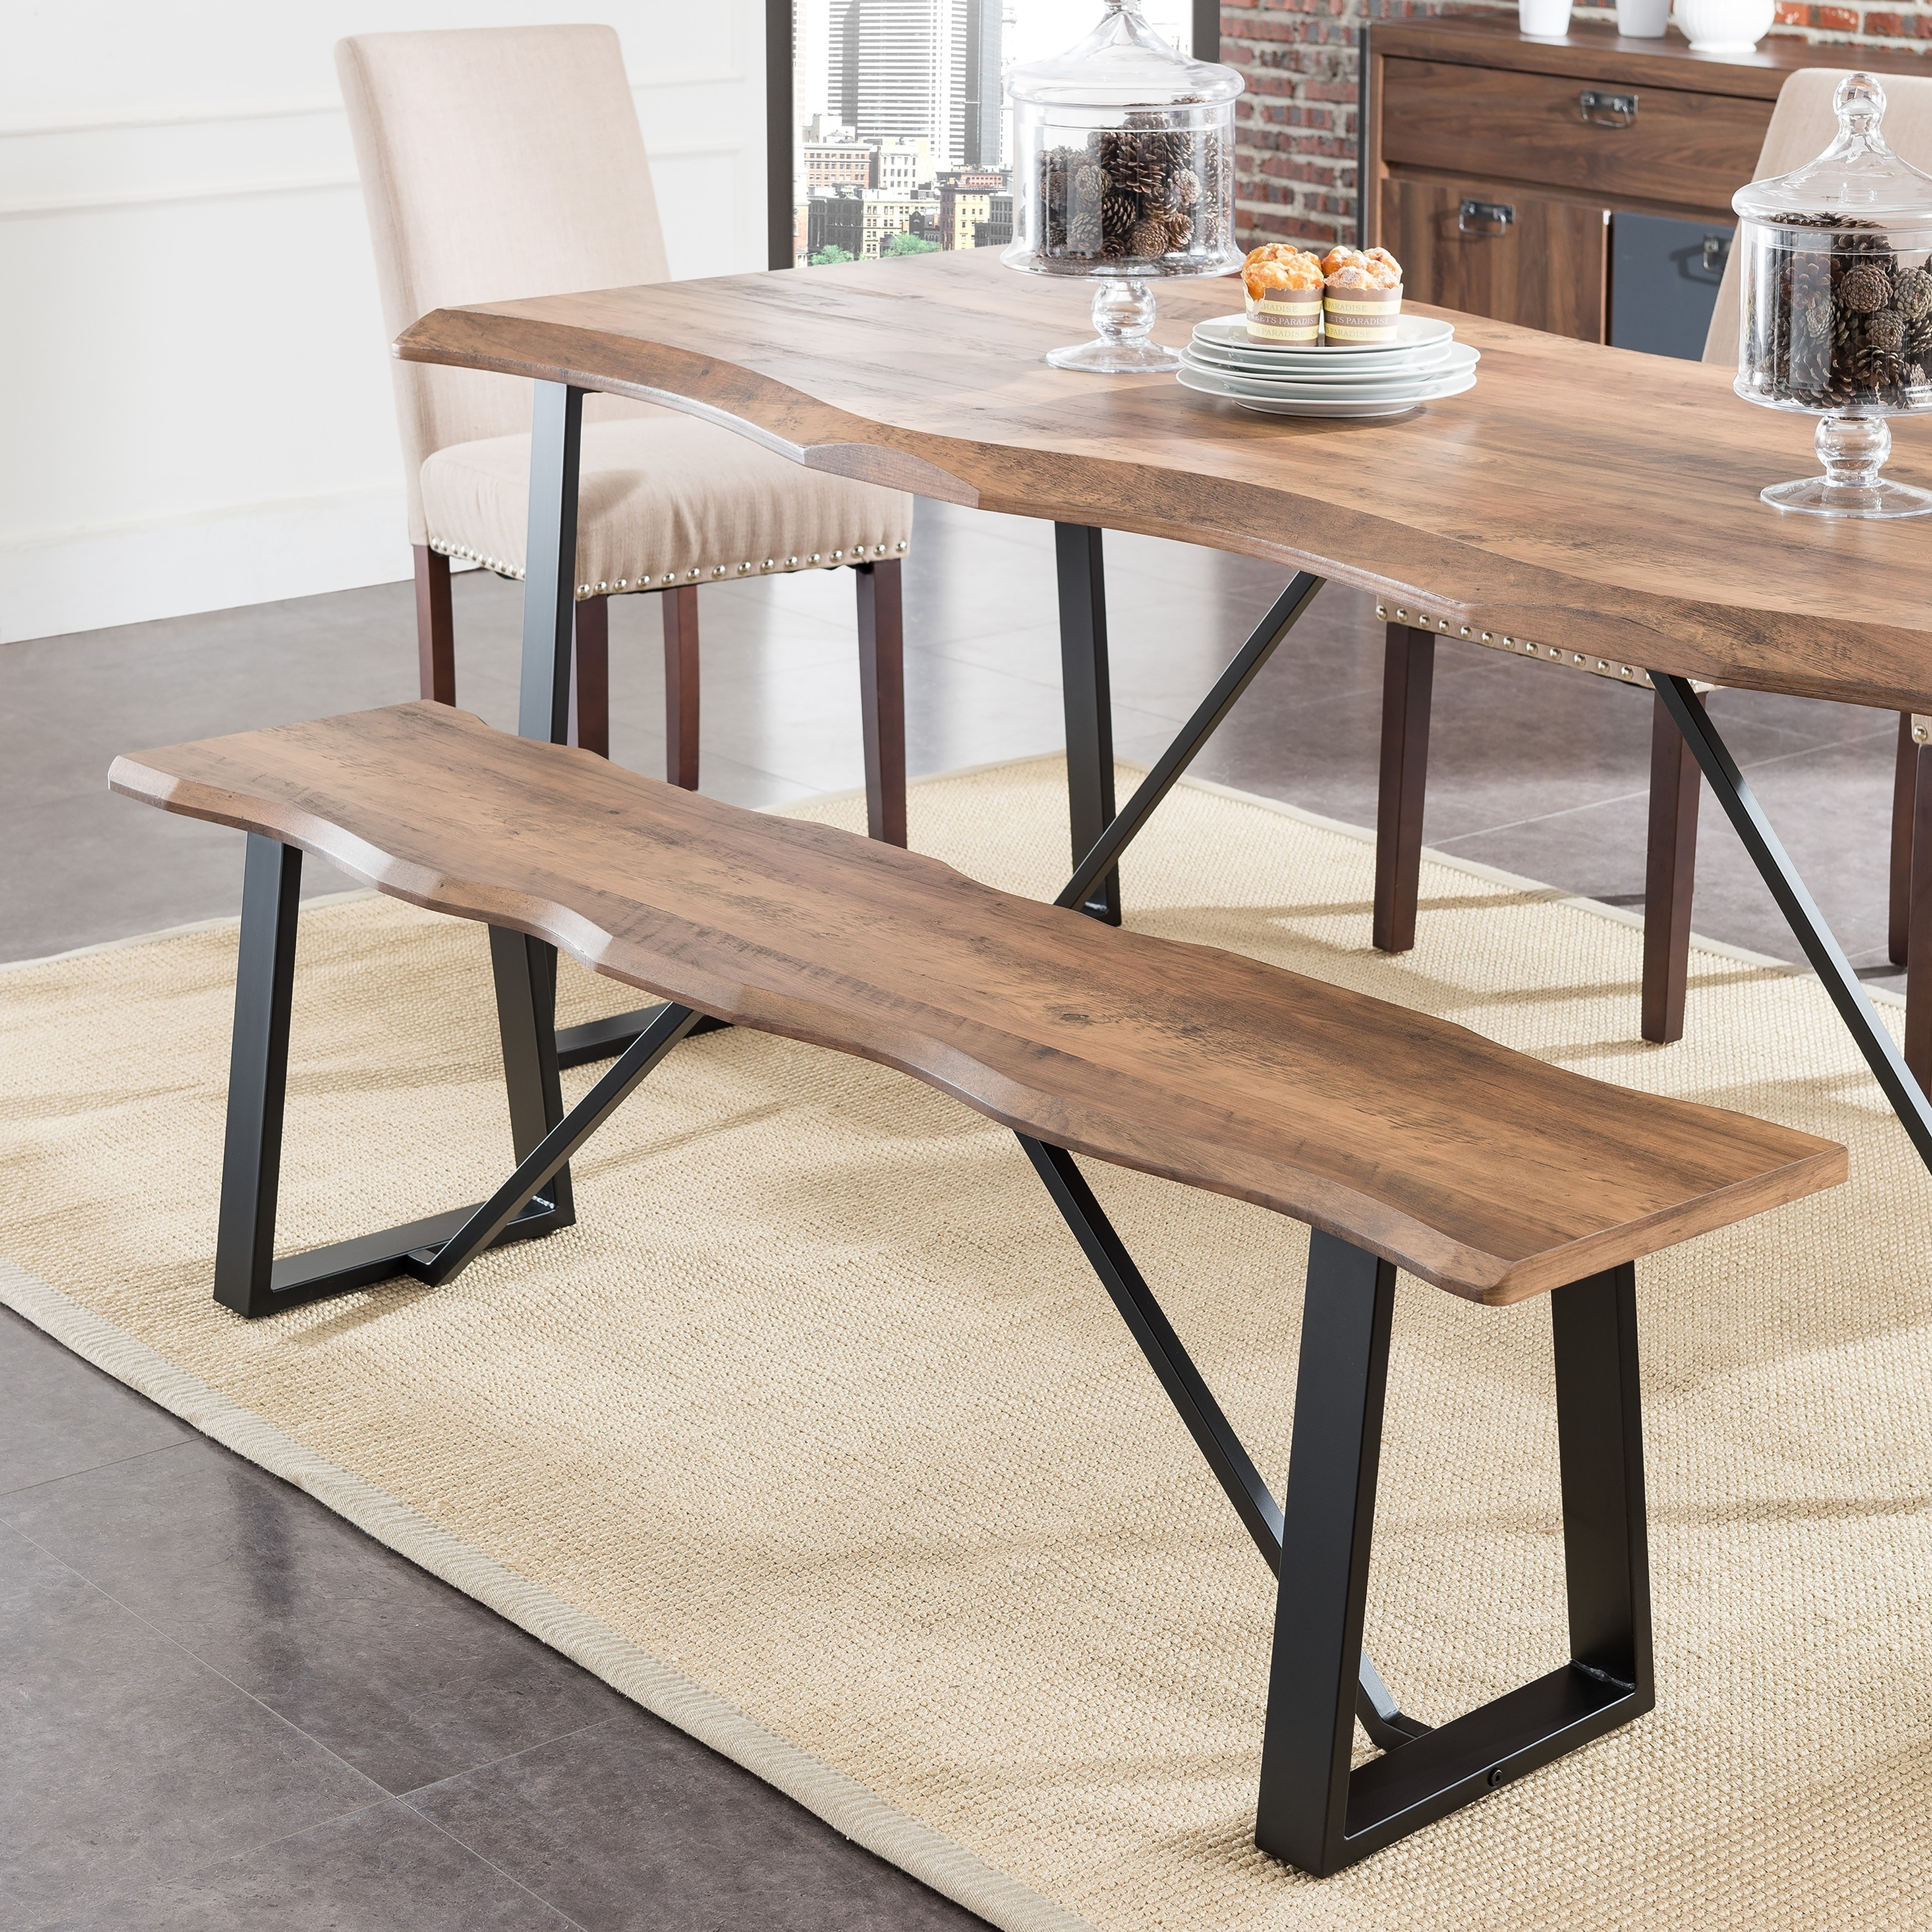 Lakeith Modern Eclectic Natural Wood Metal Dining Benches Set Of 2 On Sale Overstock 28265786